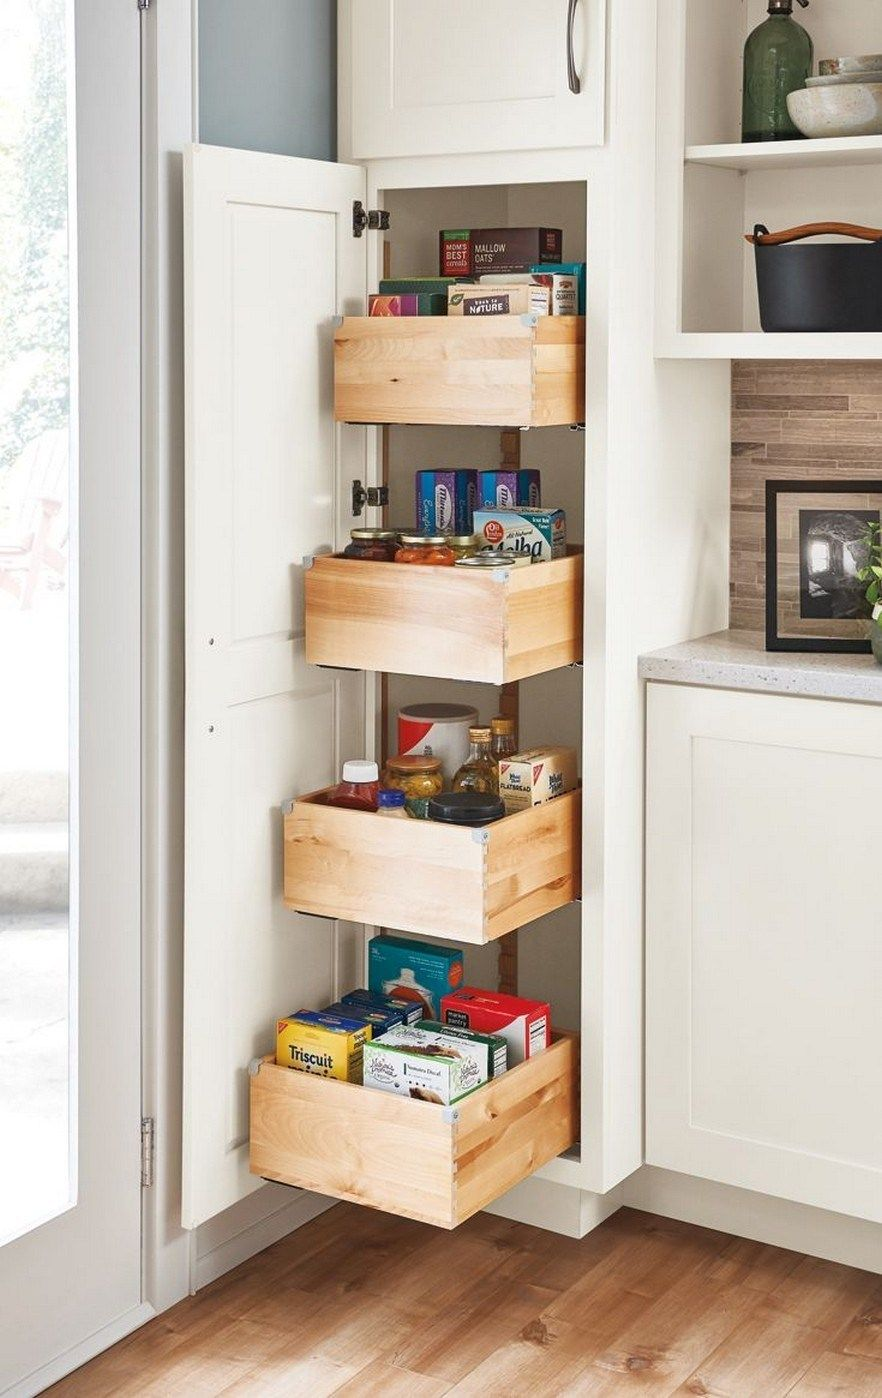 57 Smart Things You Didn T Know You Really Needed In Your Kitchen 24 Aacmm Com Kitchen Storage Solutions New Kitchen Cabinets Home Kitchens